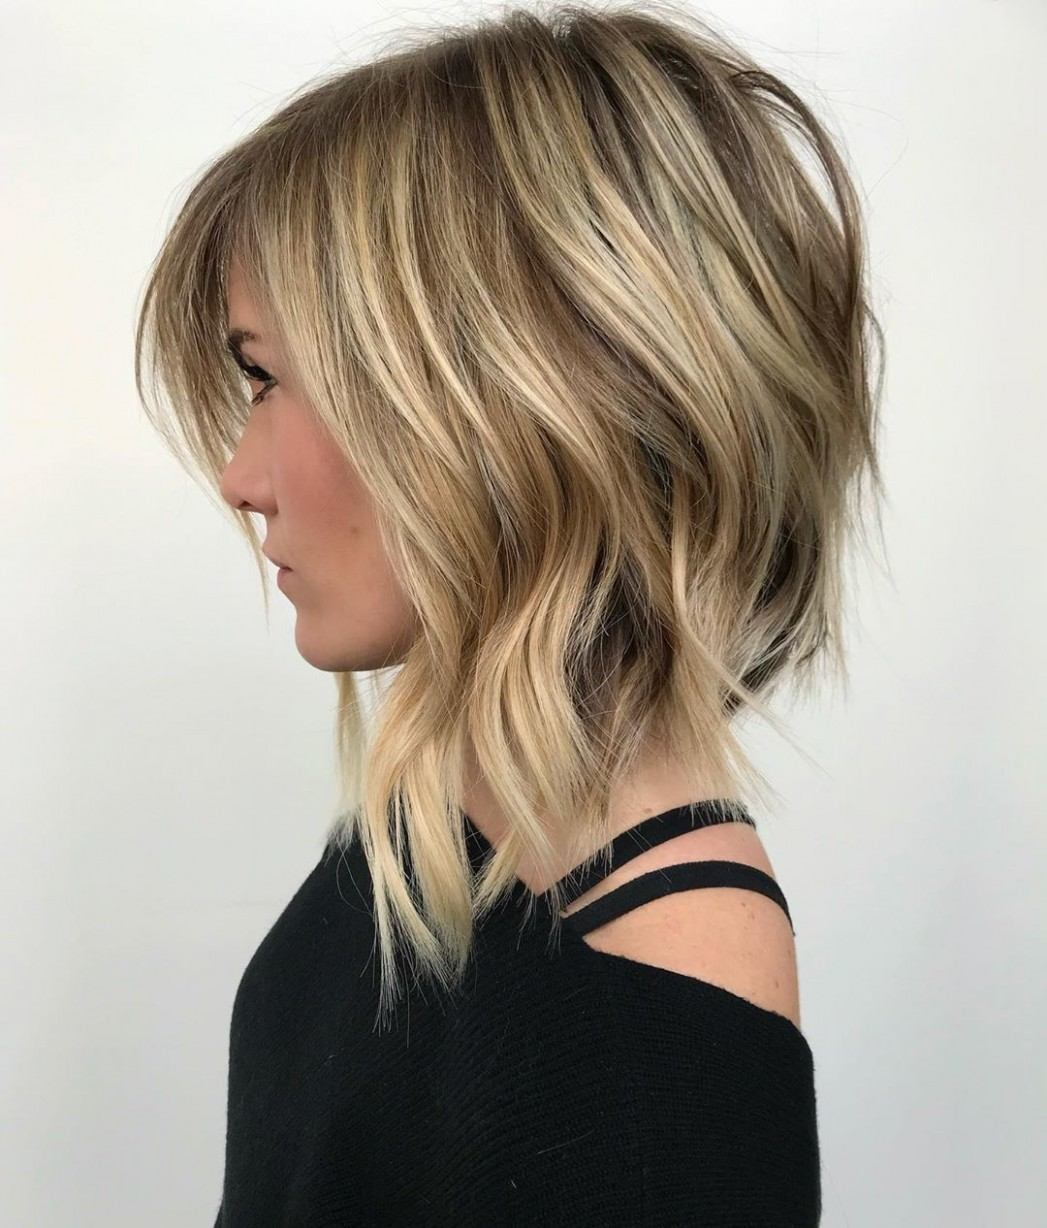 12 Best Lob Haircuts & Hairstyles  How To Style Your Long Bob